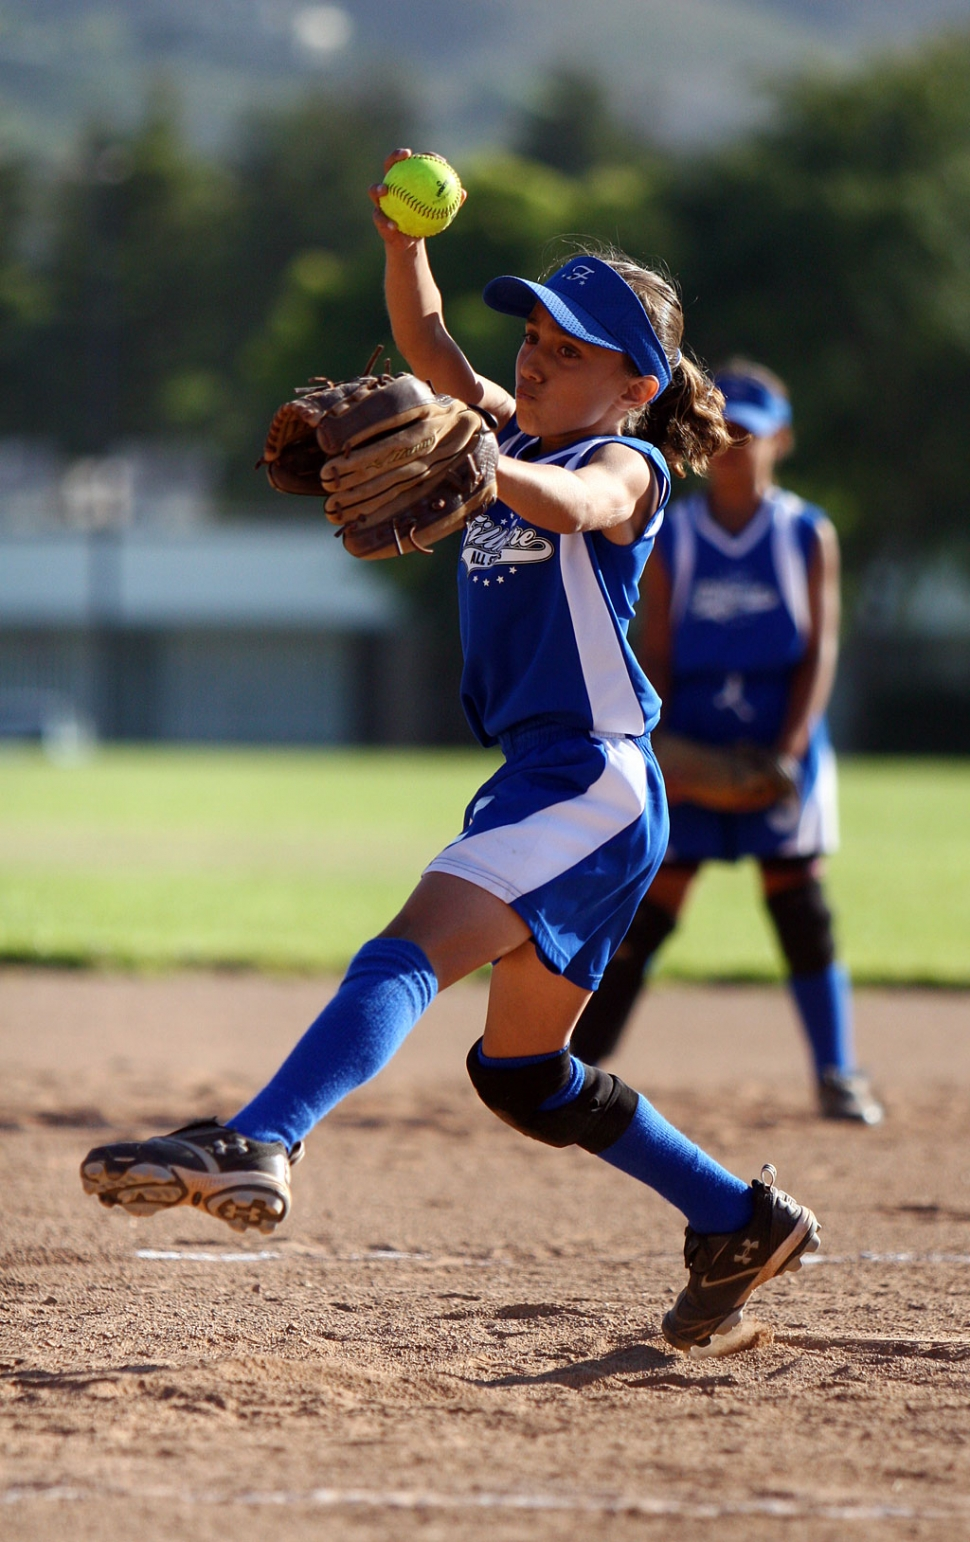 Kayleigh Thompson threw a no hitter against Moorpark last Friday. Fillmore won 14-0.